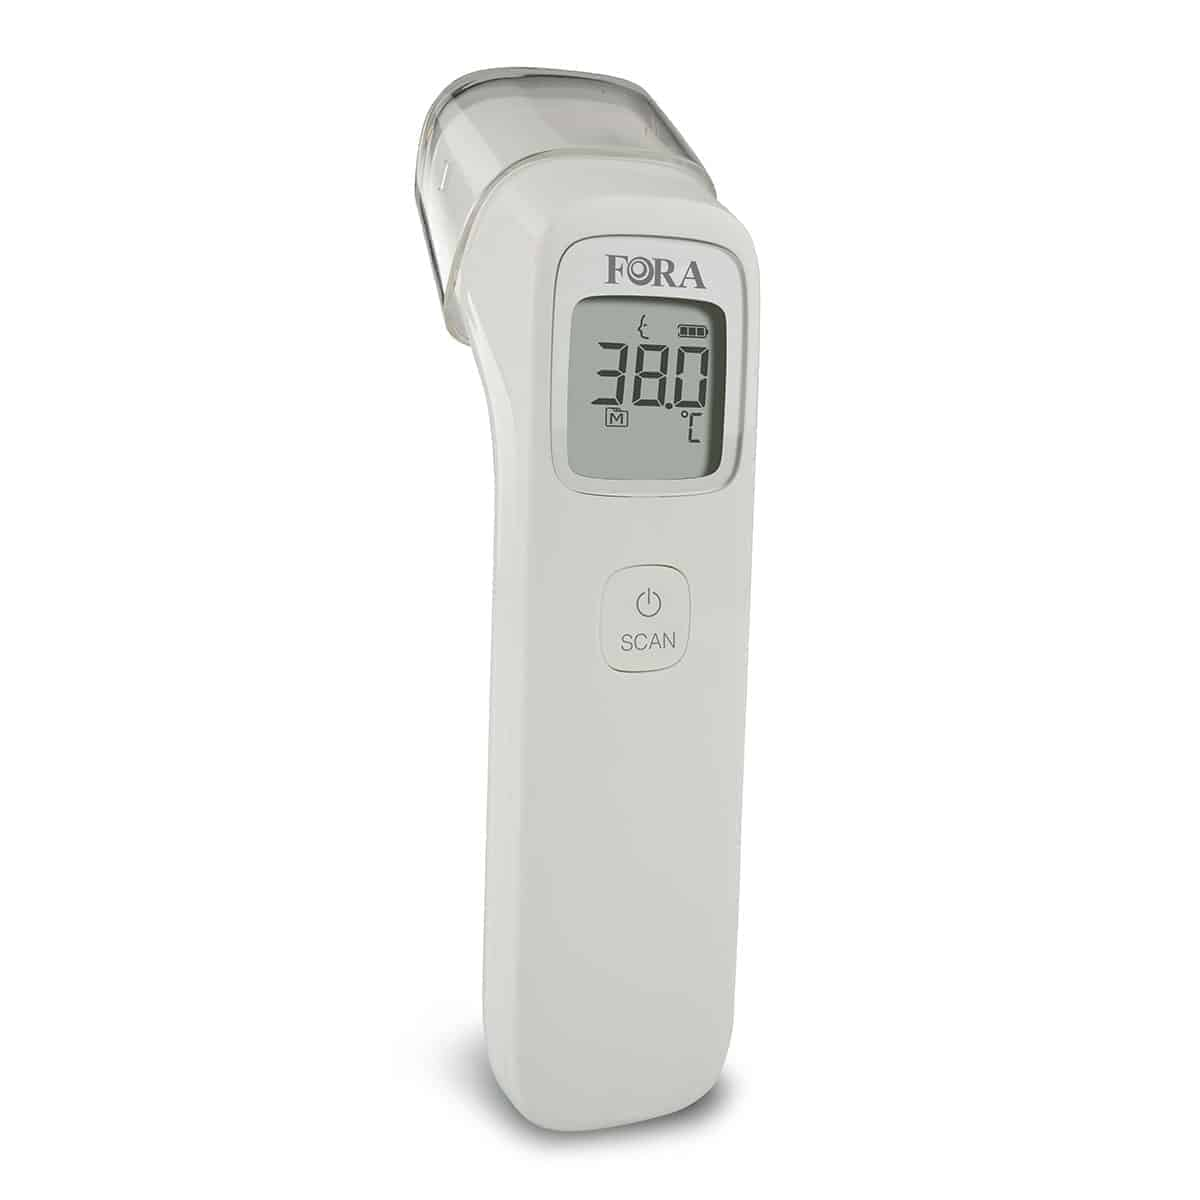 FORA IR42 Non Contact Thermometer